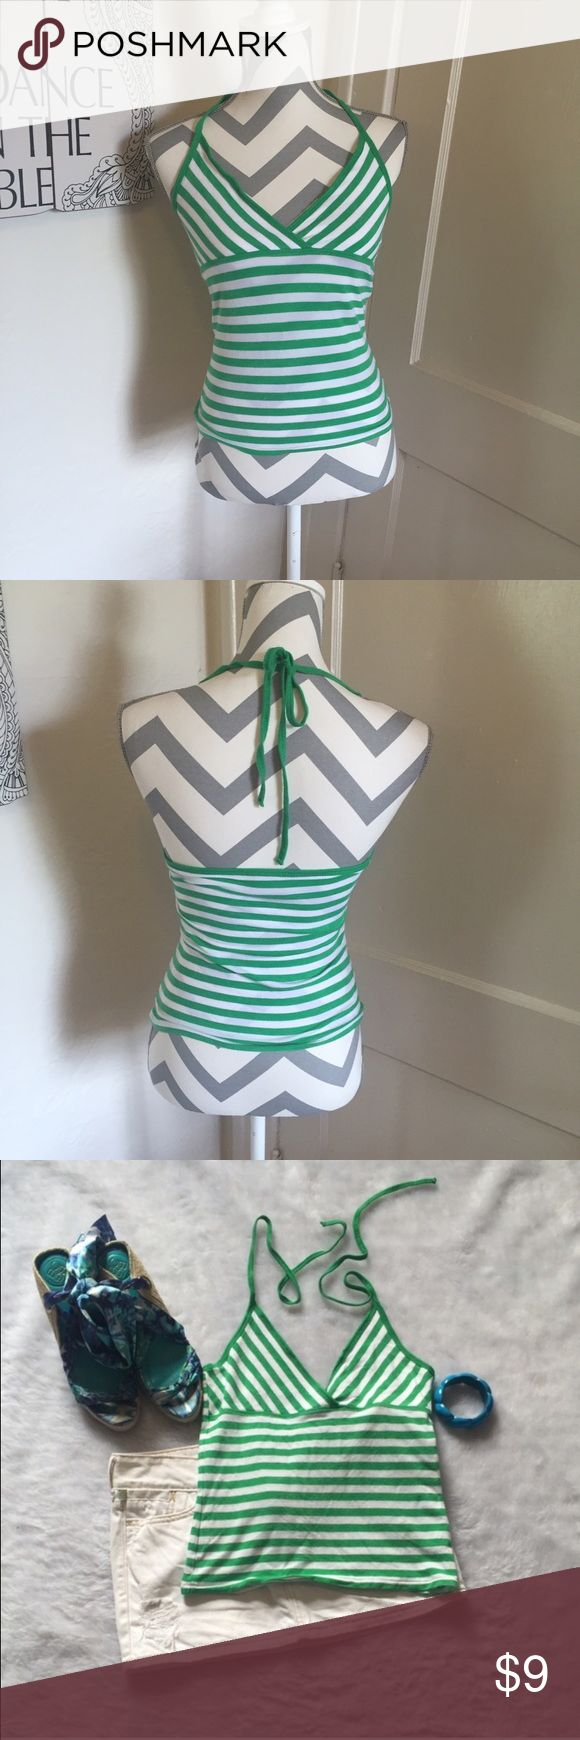 Polo striped halter Polo jeans co striped halter Green and white  Size small, short and could be worn as a crop top gently used Please ask for additional pictures, measurements, or ask questions before purchase No trades or other apps. Ships next business day, unless otherwise noted in my closet Reasonable offers accepted  Five star rating Bundle for discount Polo by Ralph Lauren Tops